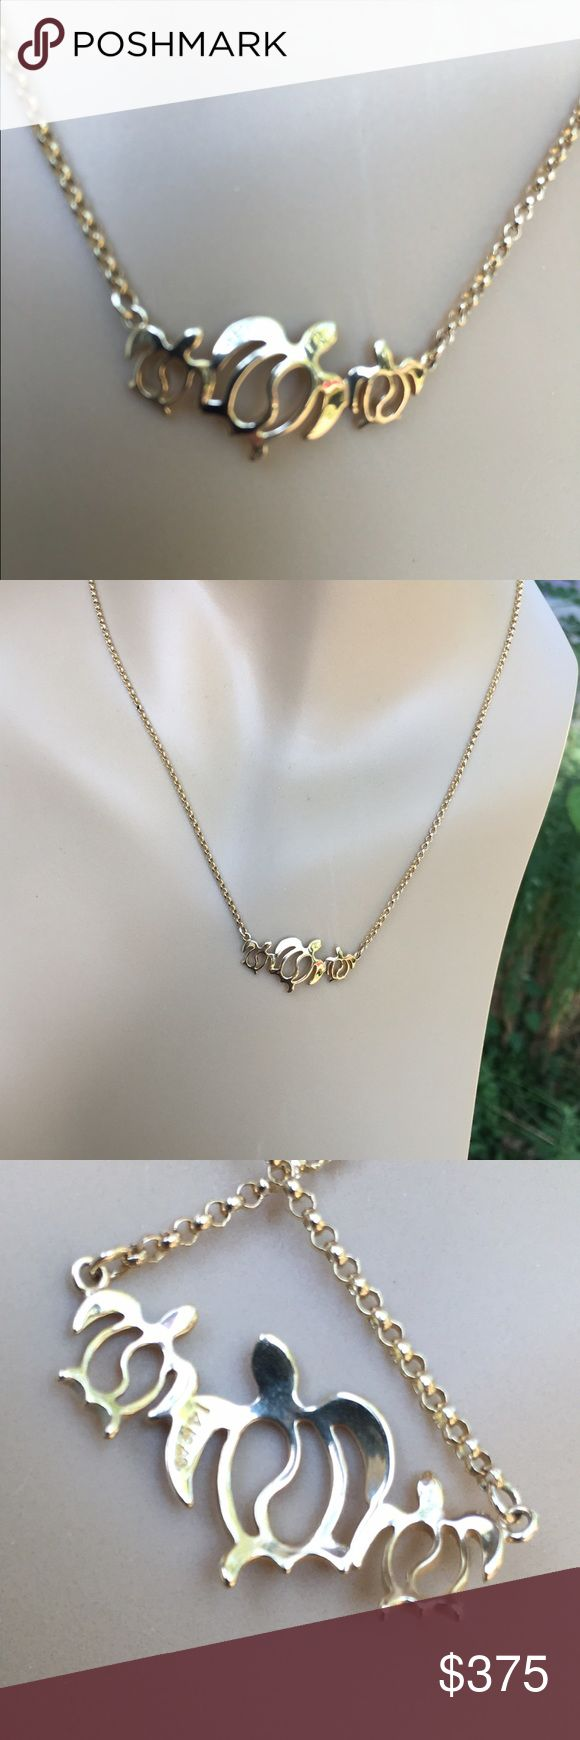 "14K Gold Honu Necklace Price Firm  Beautiful 14K gold 17"" necklace from Maui Divers Jewelry in Hawaii. Perfect condition. Not eligible for bundle discount. Maui Divers Jewelry Jewelry Necklaces"